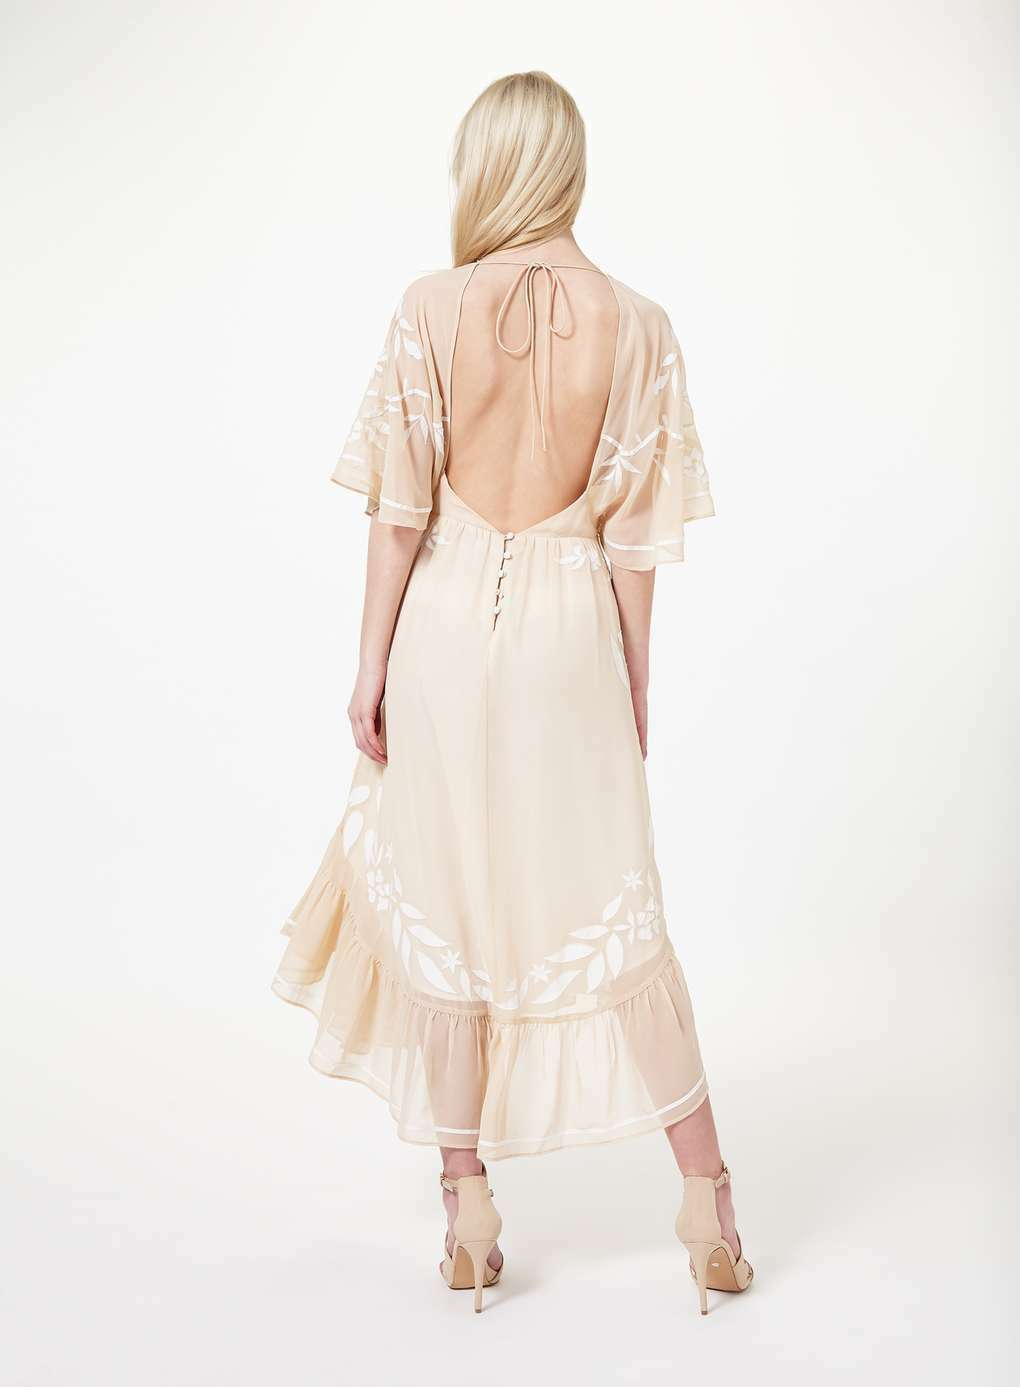 GATSBY DOWNTON 40's DRESSROMANTIC FLOATYBNWOT8-10SPECIAL OCCASION RRP